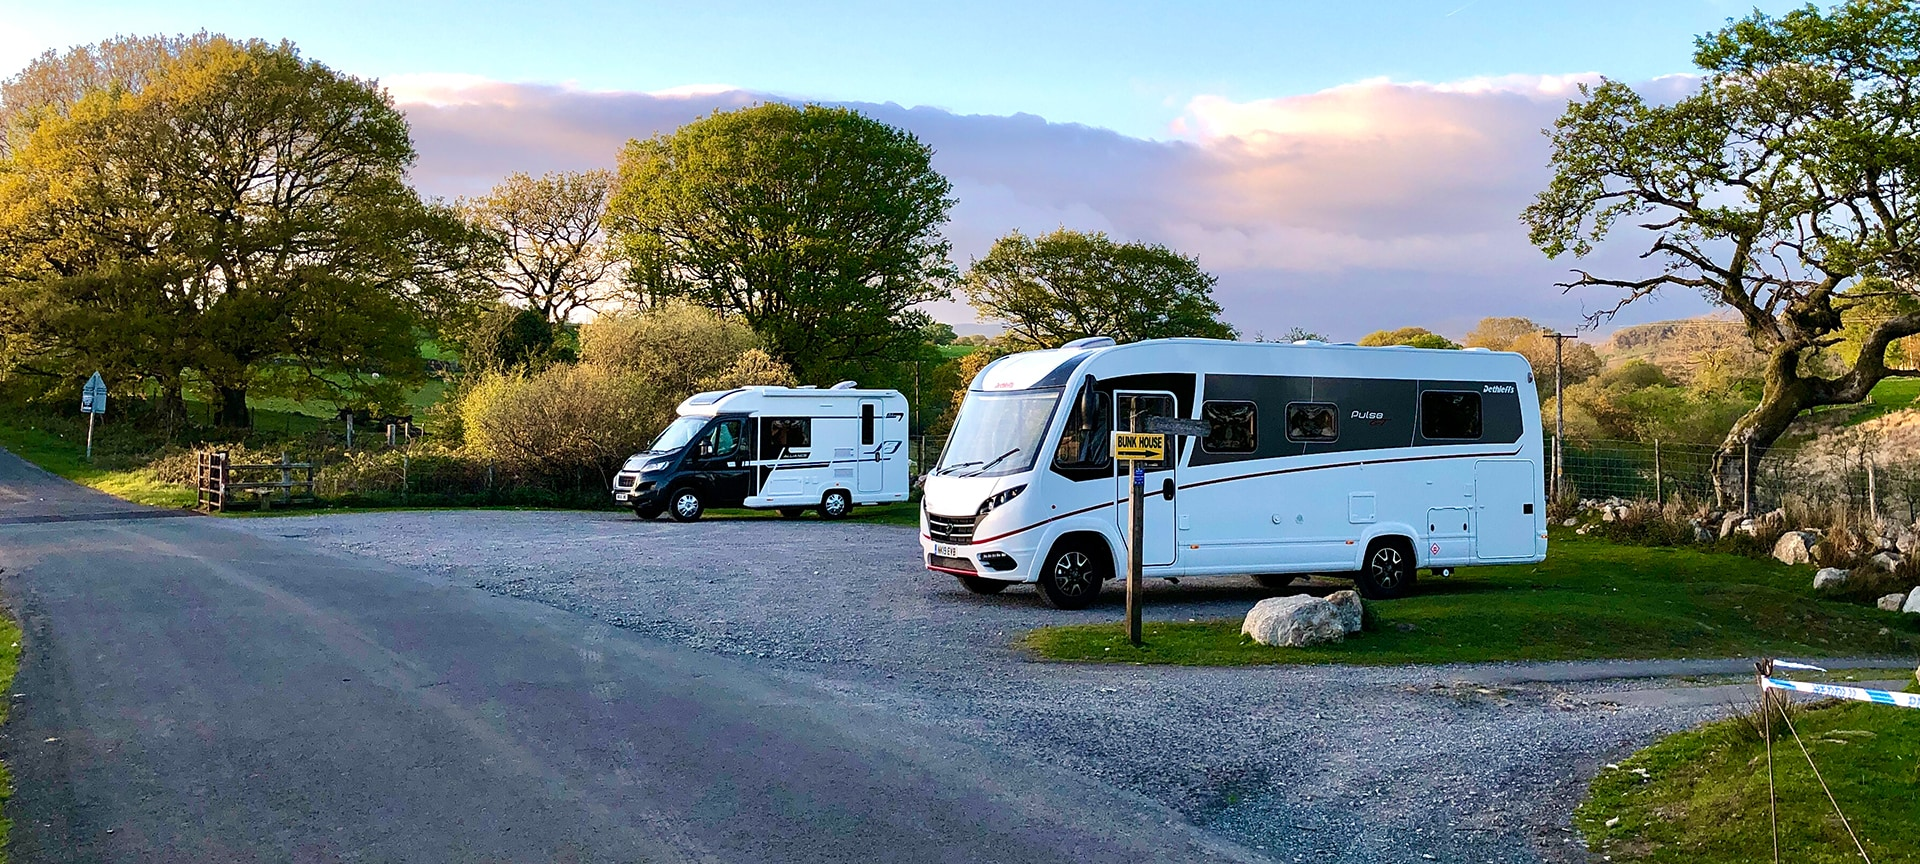 If you want even more freedom, you need to go motorhoming or campervanning around Wales, so you can park up and make a coffee or lunch whilst looking out over the stunning Welsh coast.